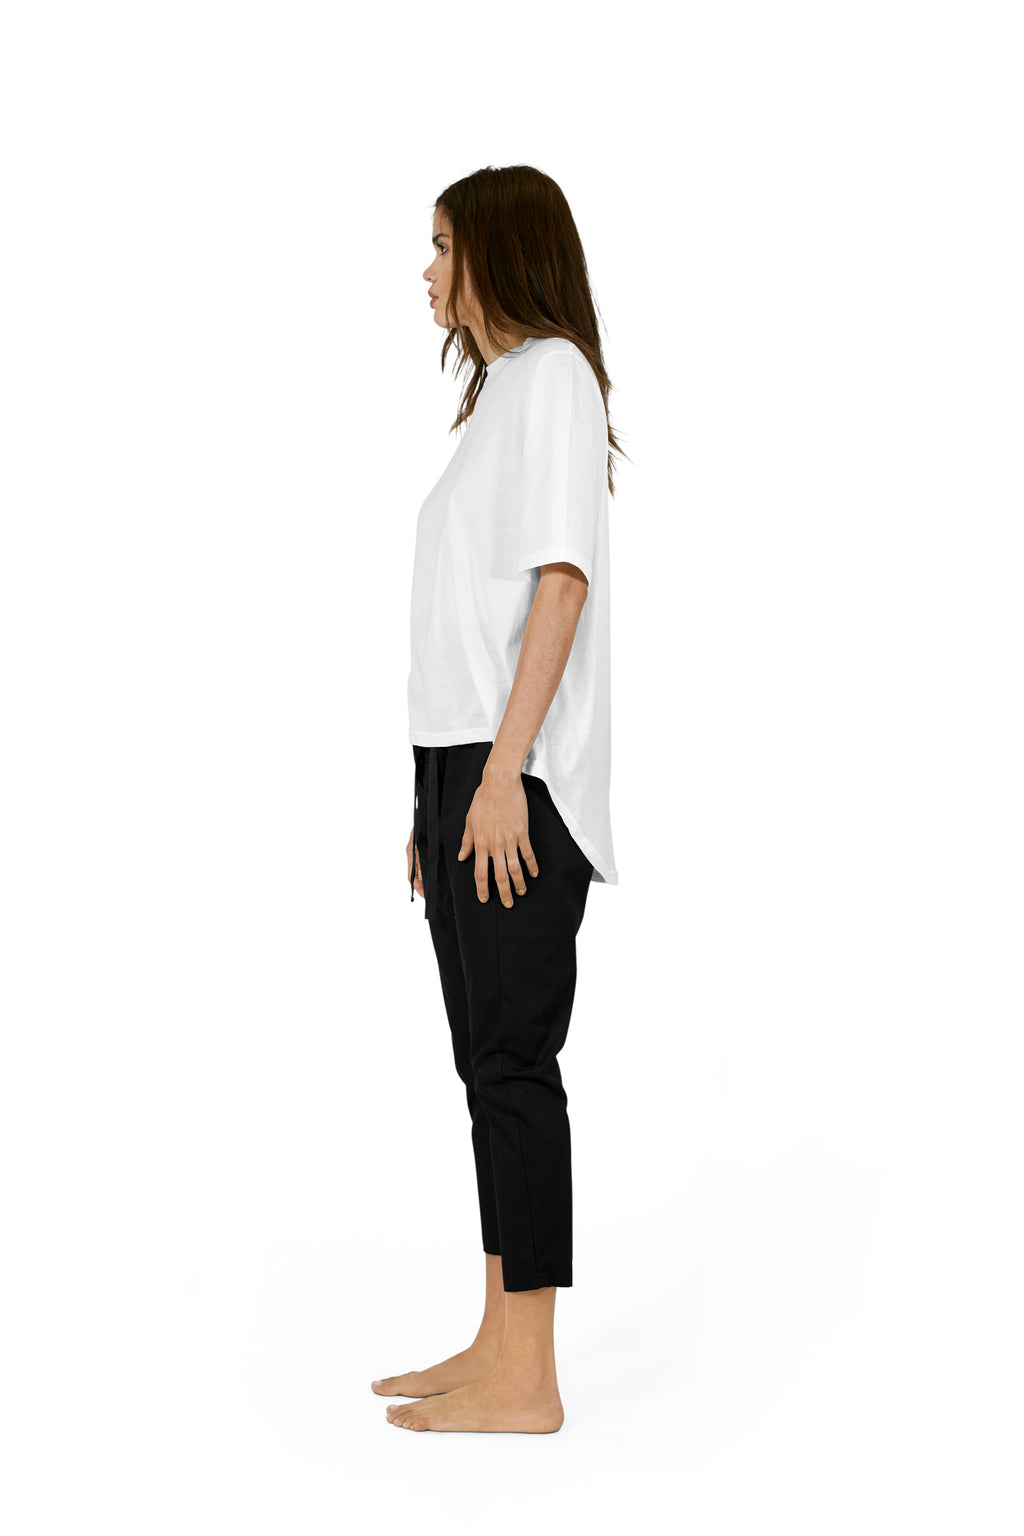 SanBasic Scoop Tee